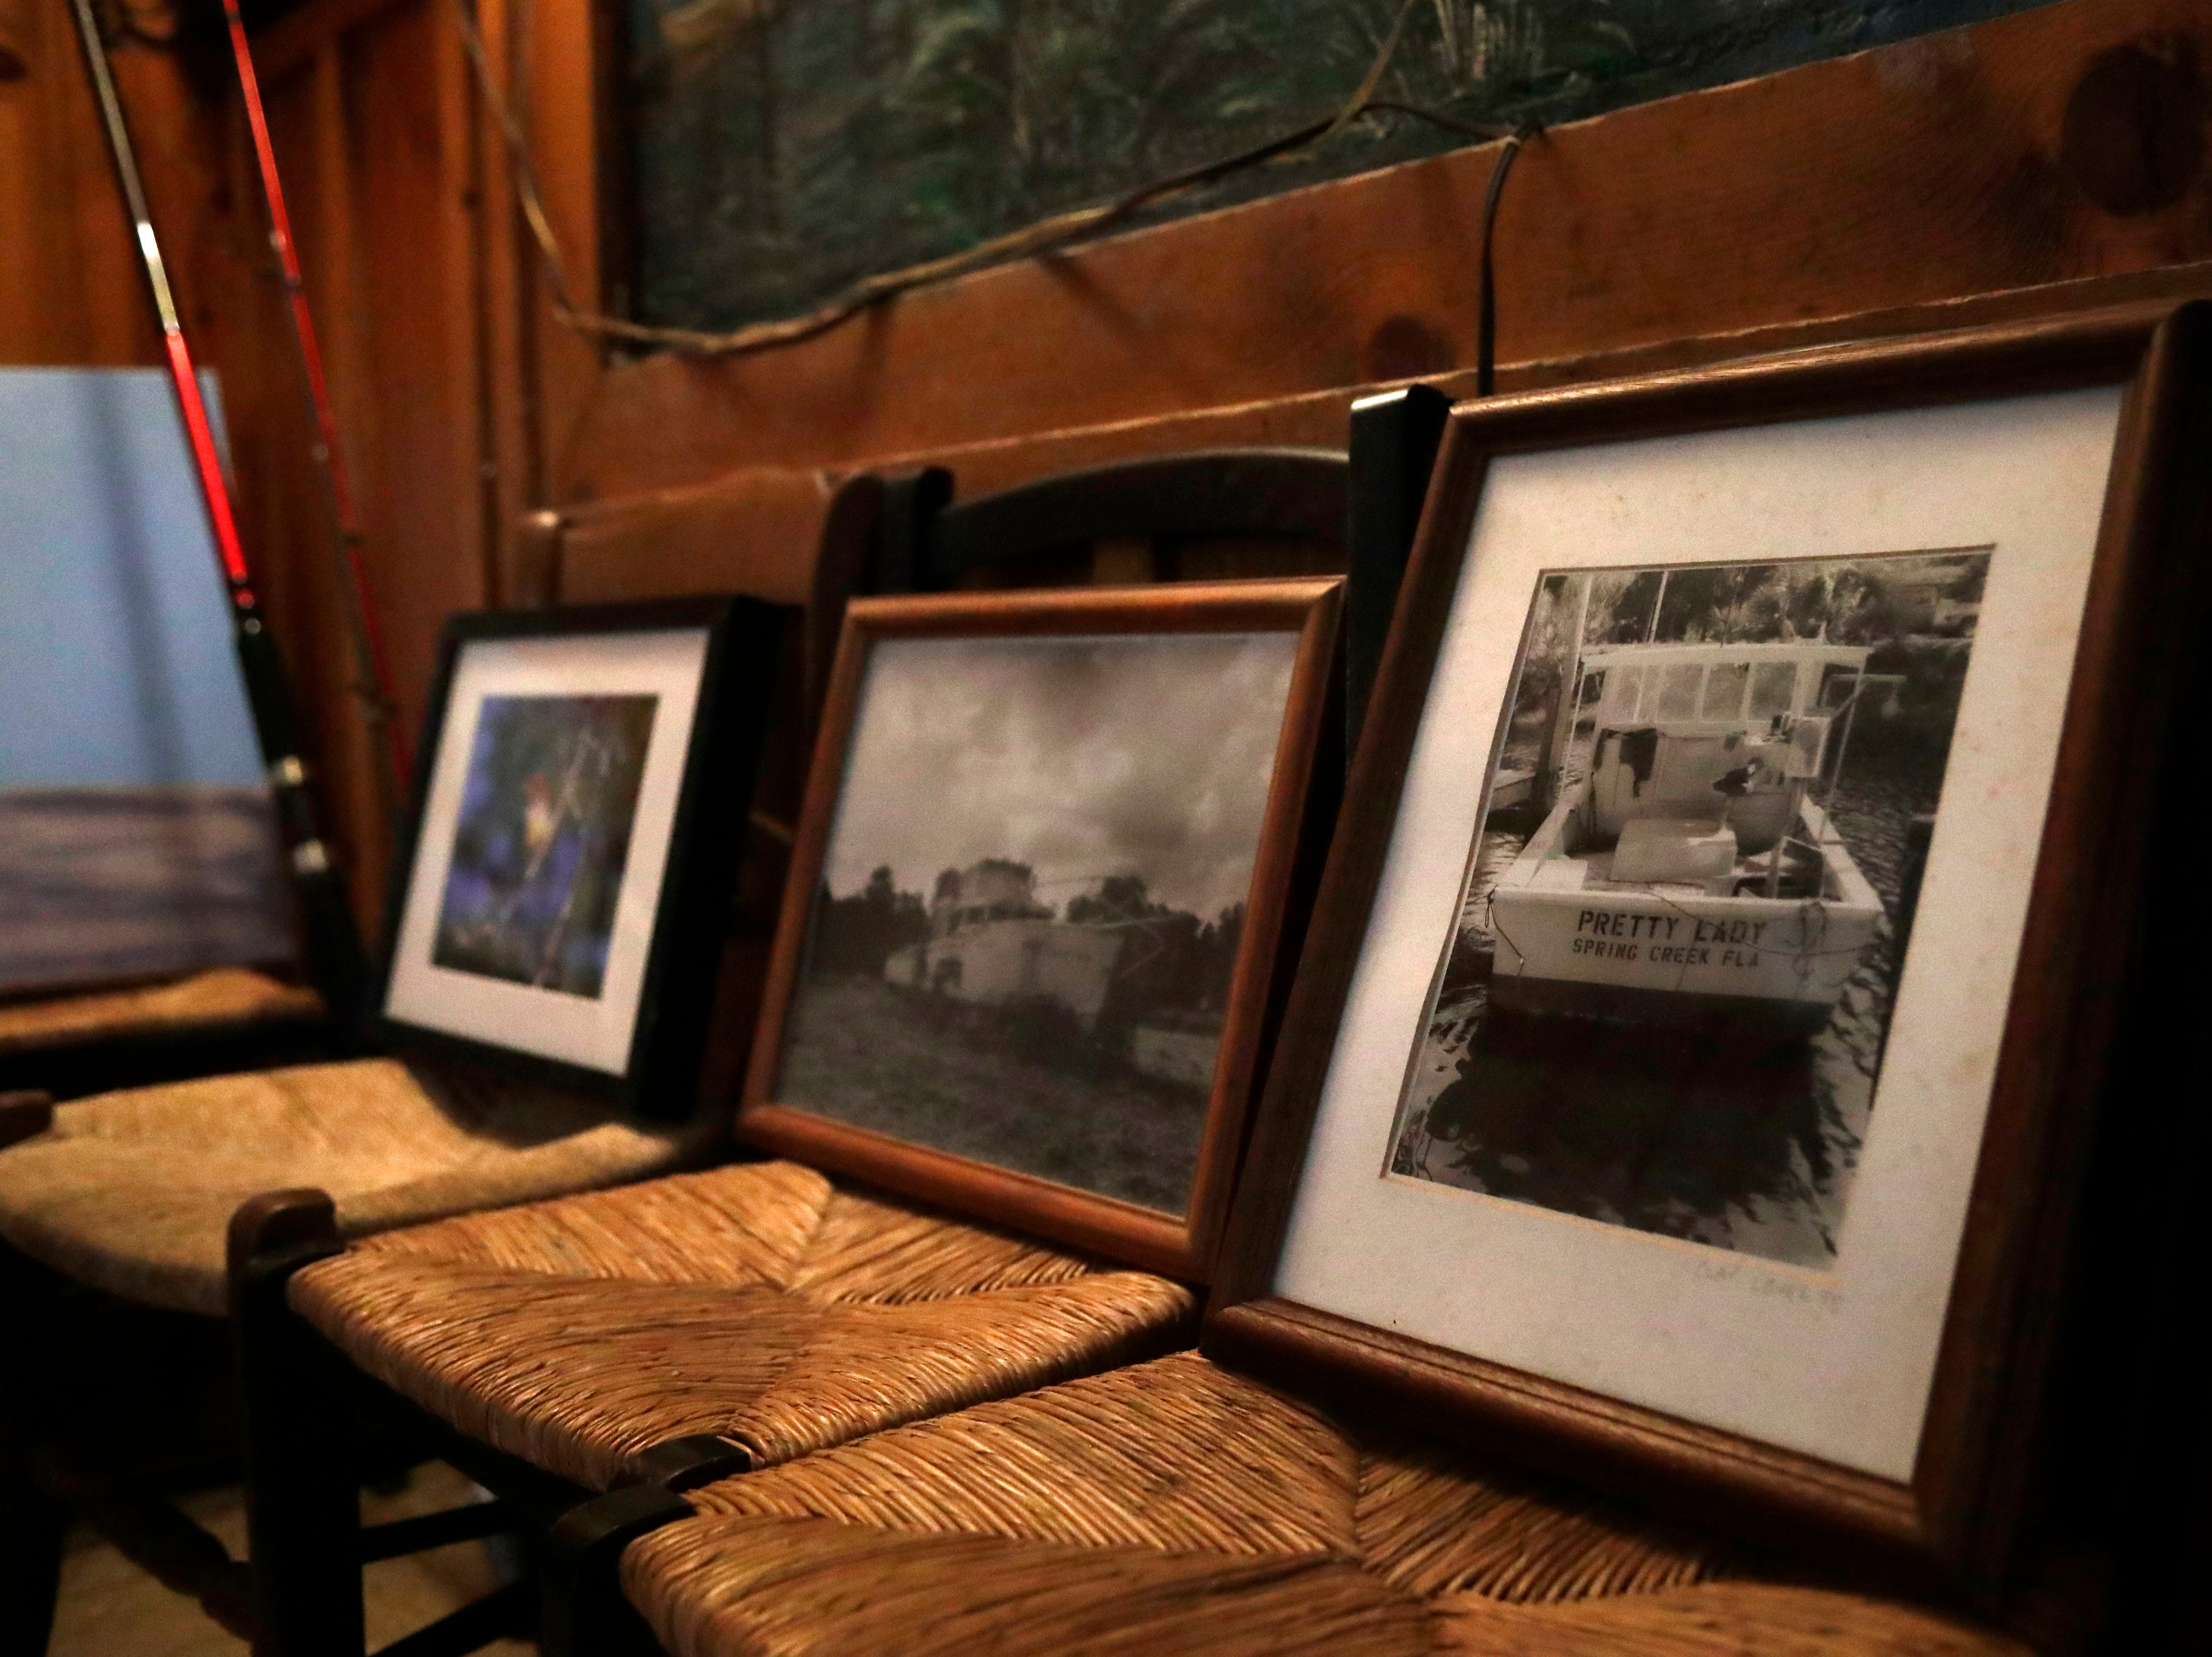 Framed pieces of artwork were able to be salvaged from the wreckage caused by Hurricane Michael. Tuesday, Feb. 5, 2019, the artwork sits on chairs that line the walls in the dining area of the Spring Creek Restaurant.